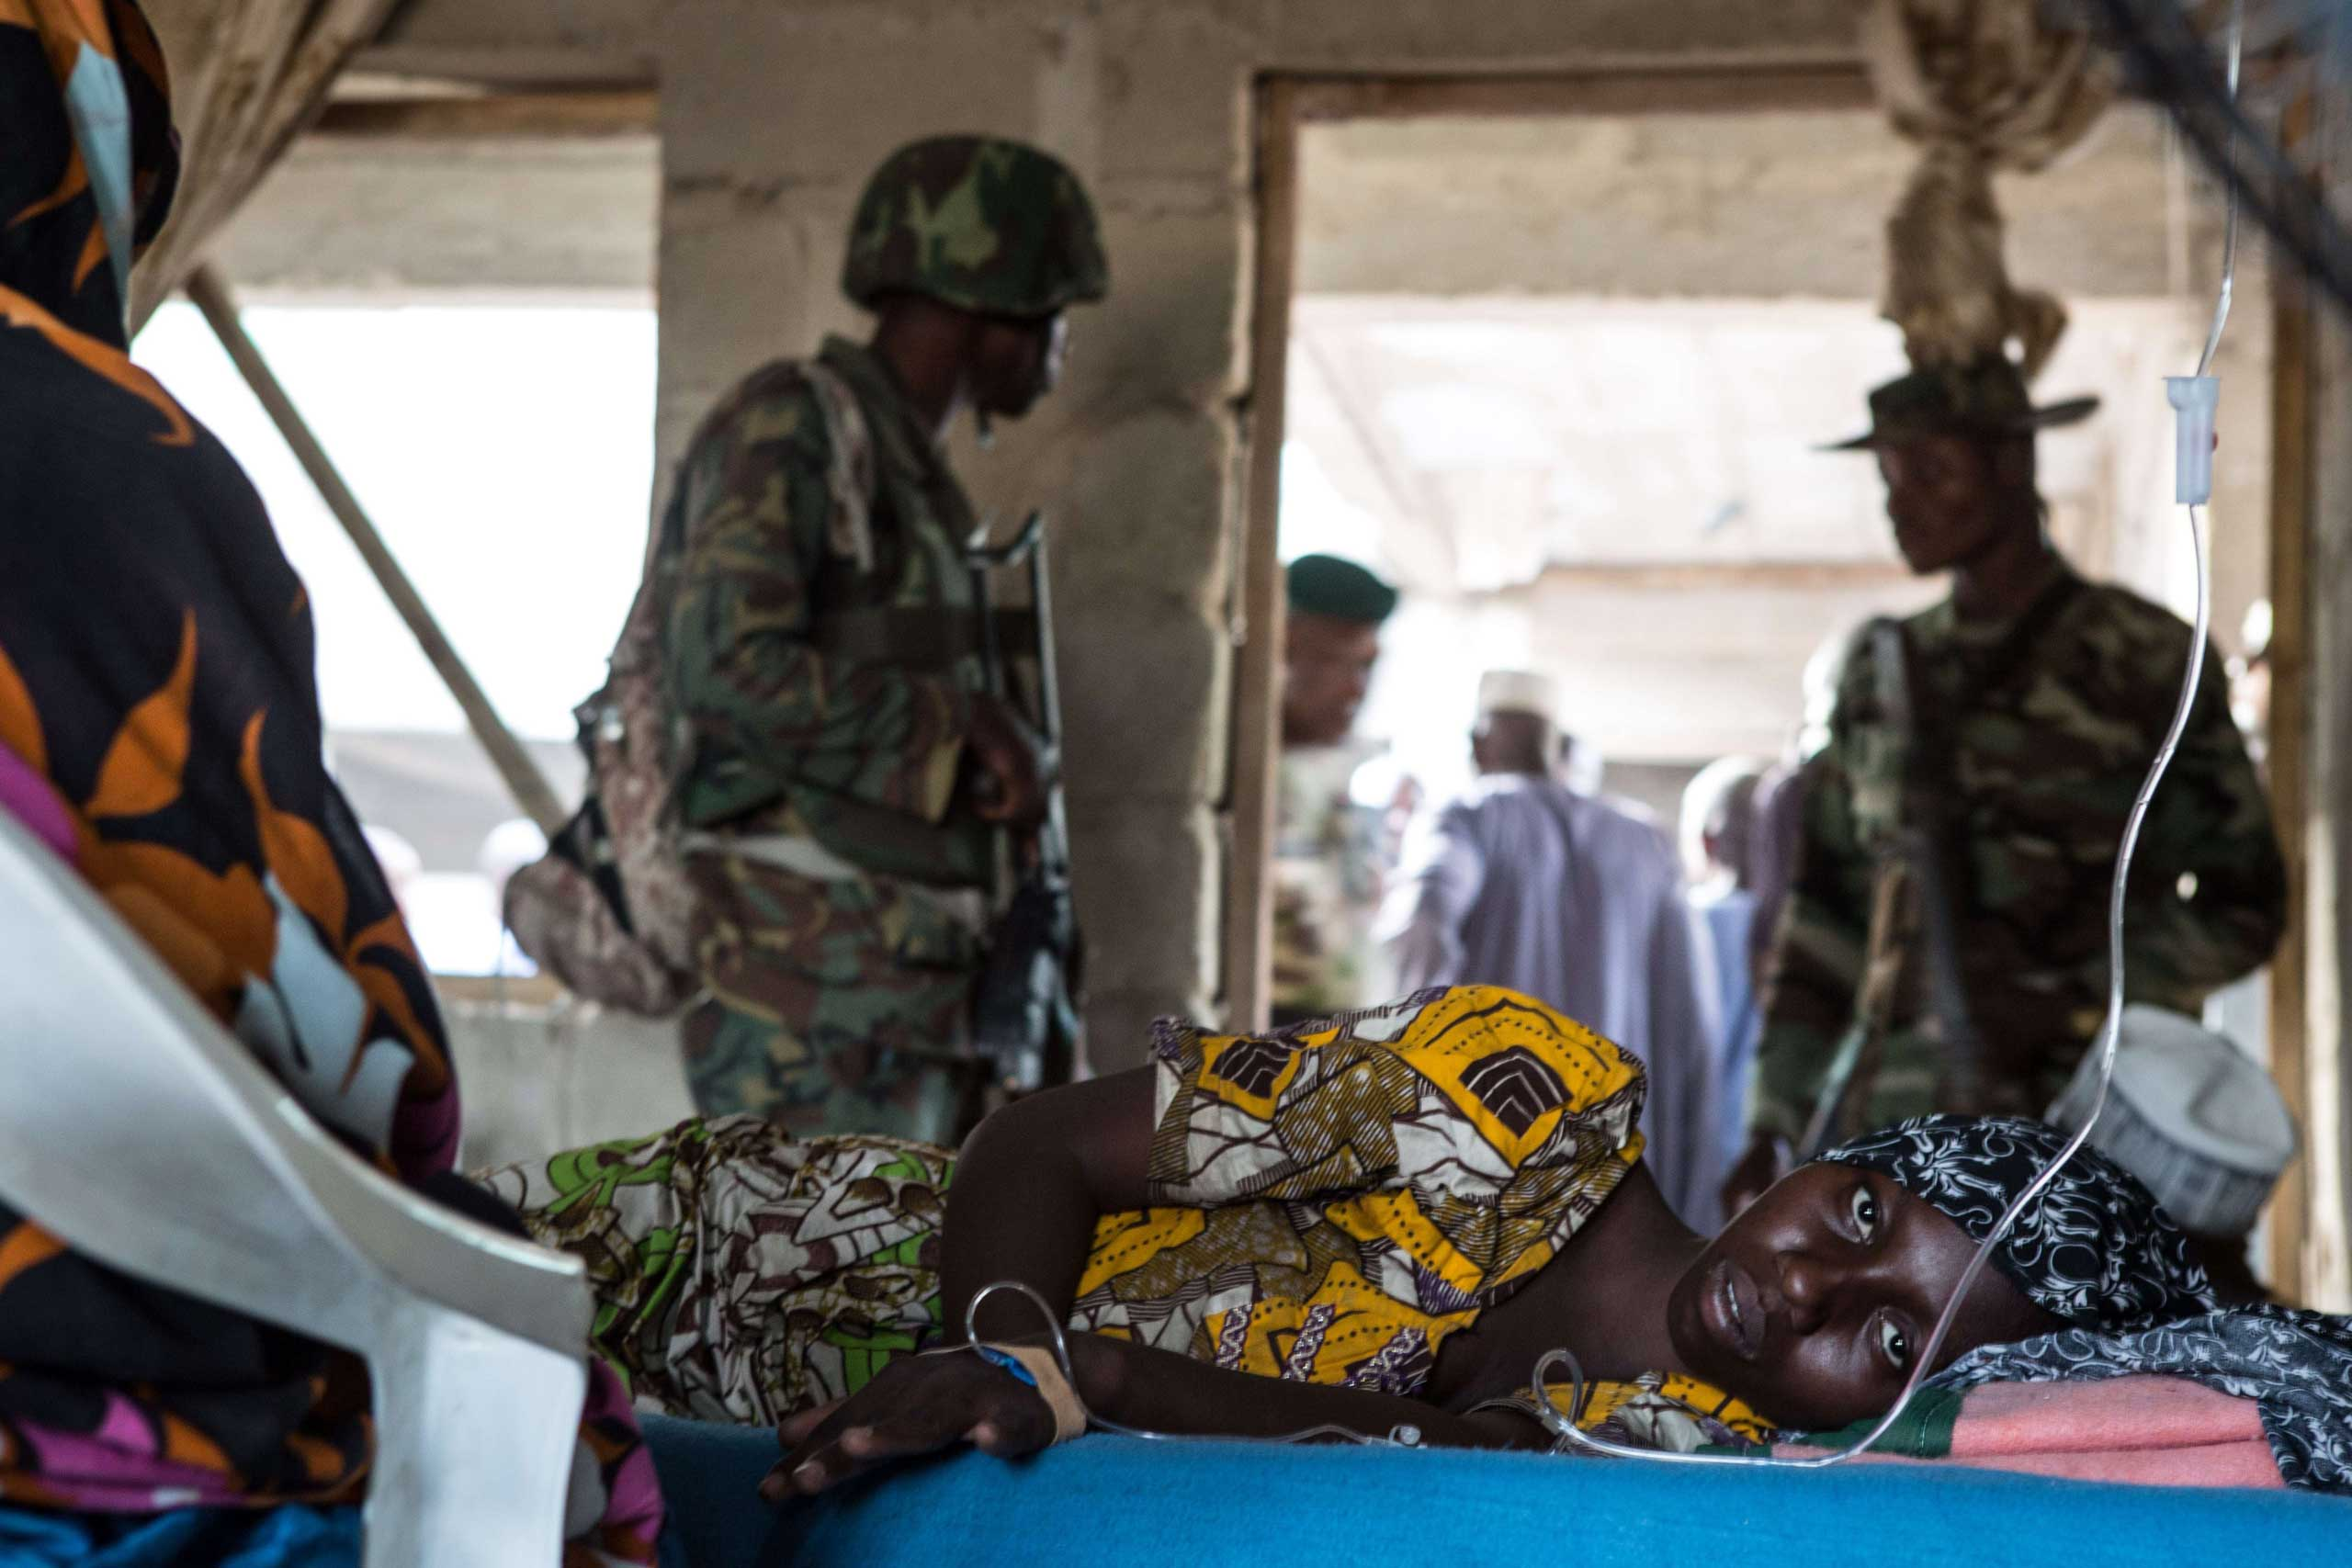 A young woman lies ill in a makeshift hospital room in Maiduguri, northwest of Bama on March 25, 2015.